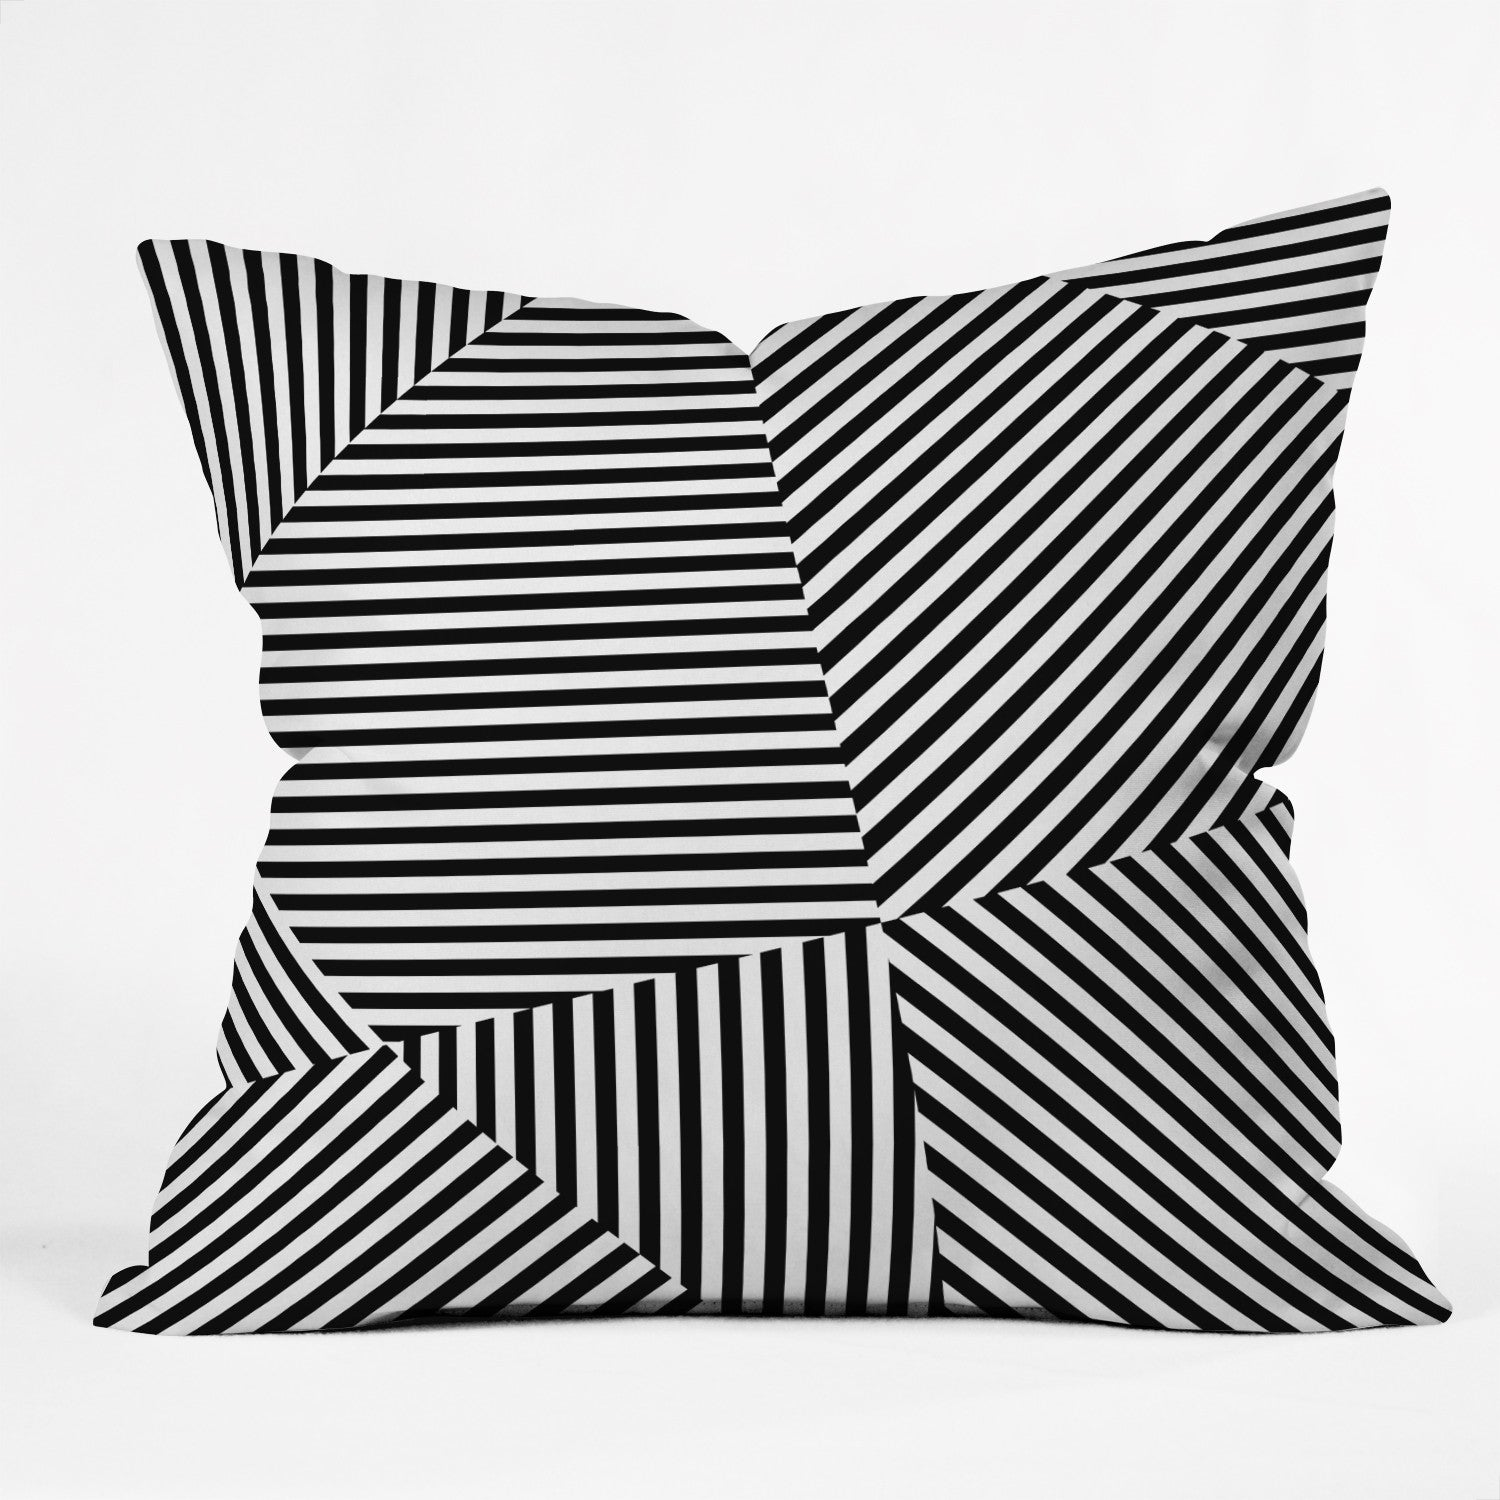 Three Of The Possessed Dazzle New York Outdoor Throw Pillow